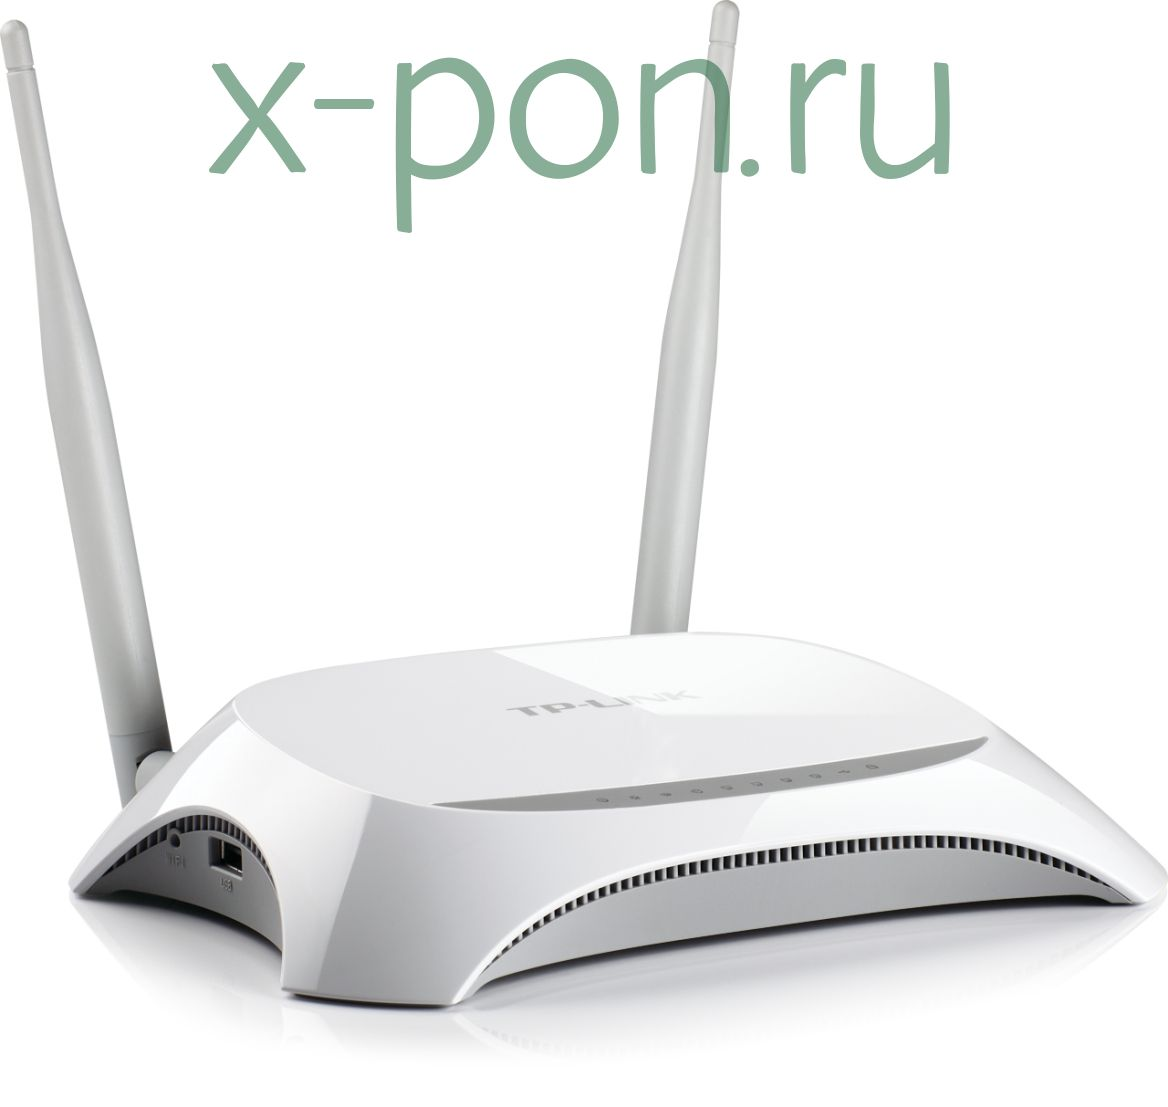 Маршрутизатор TP-LINK TL-WR840N Wireless Router 802.11g, 4-ports, 300Мбит/с